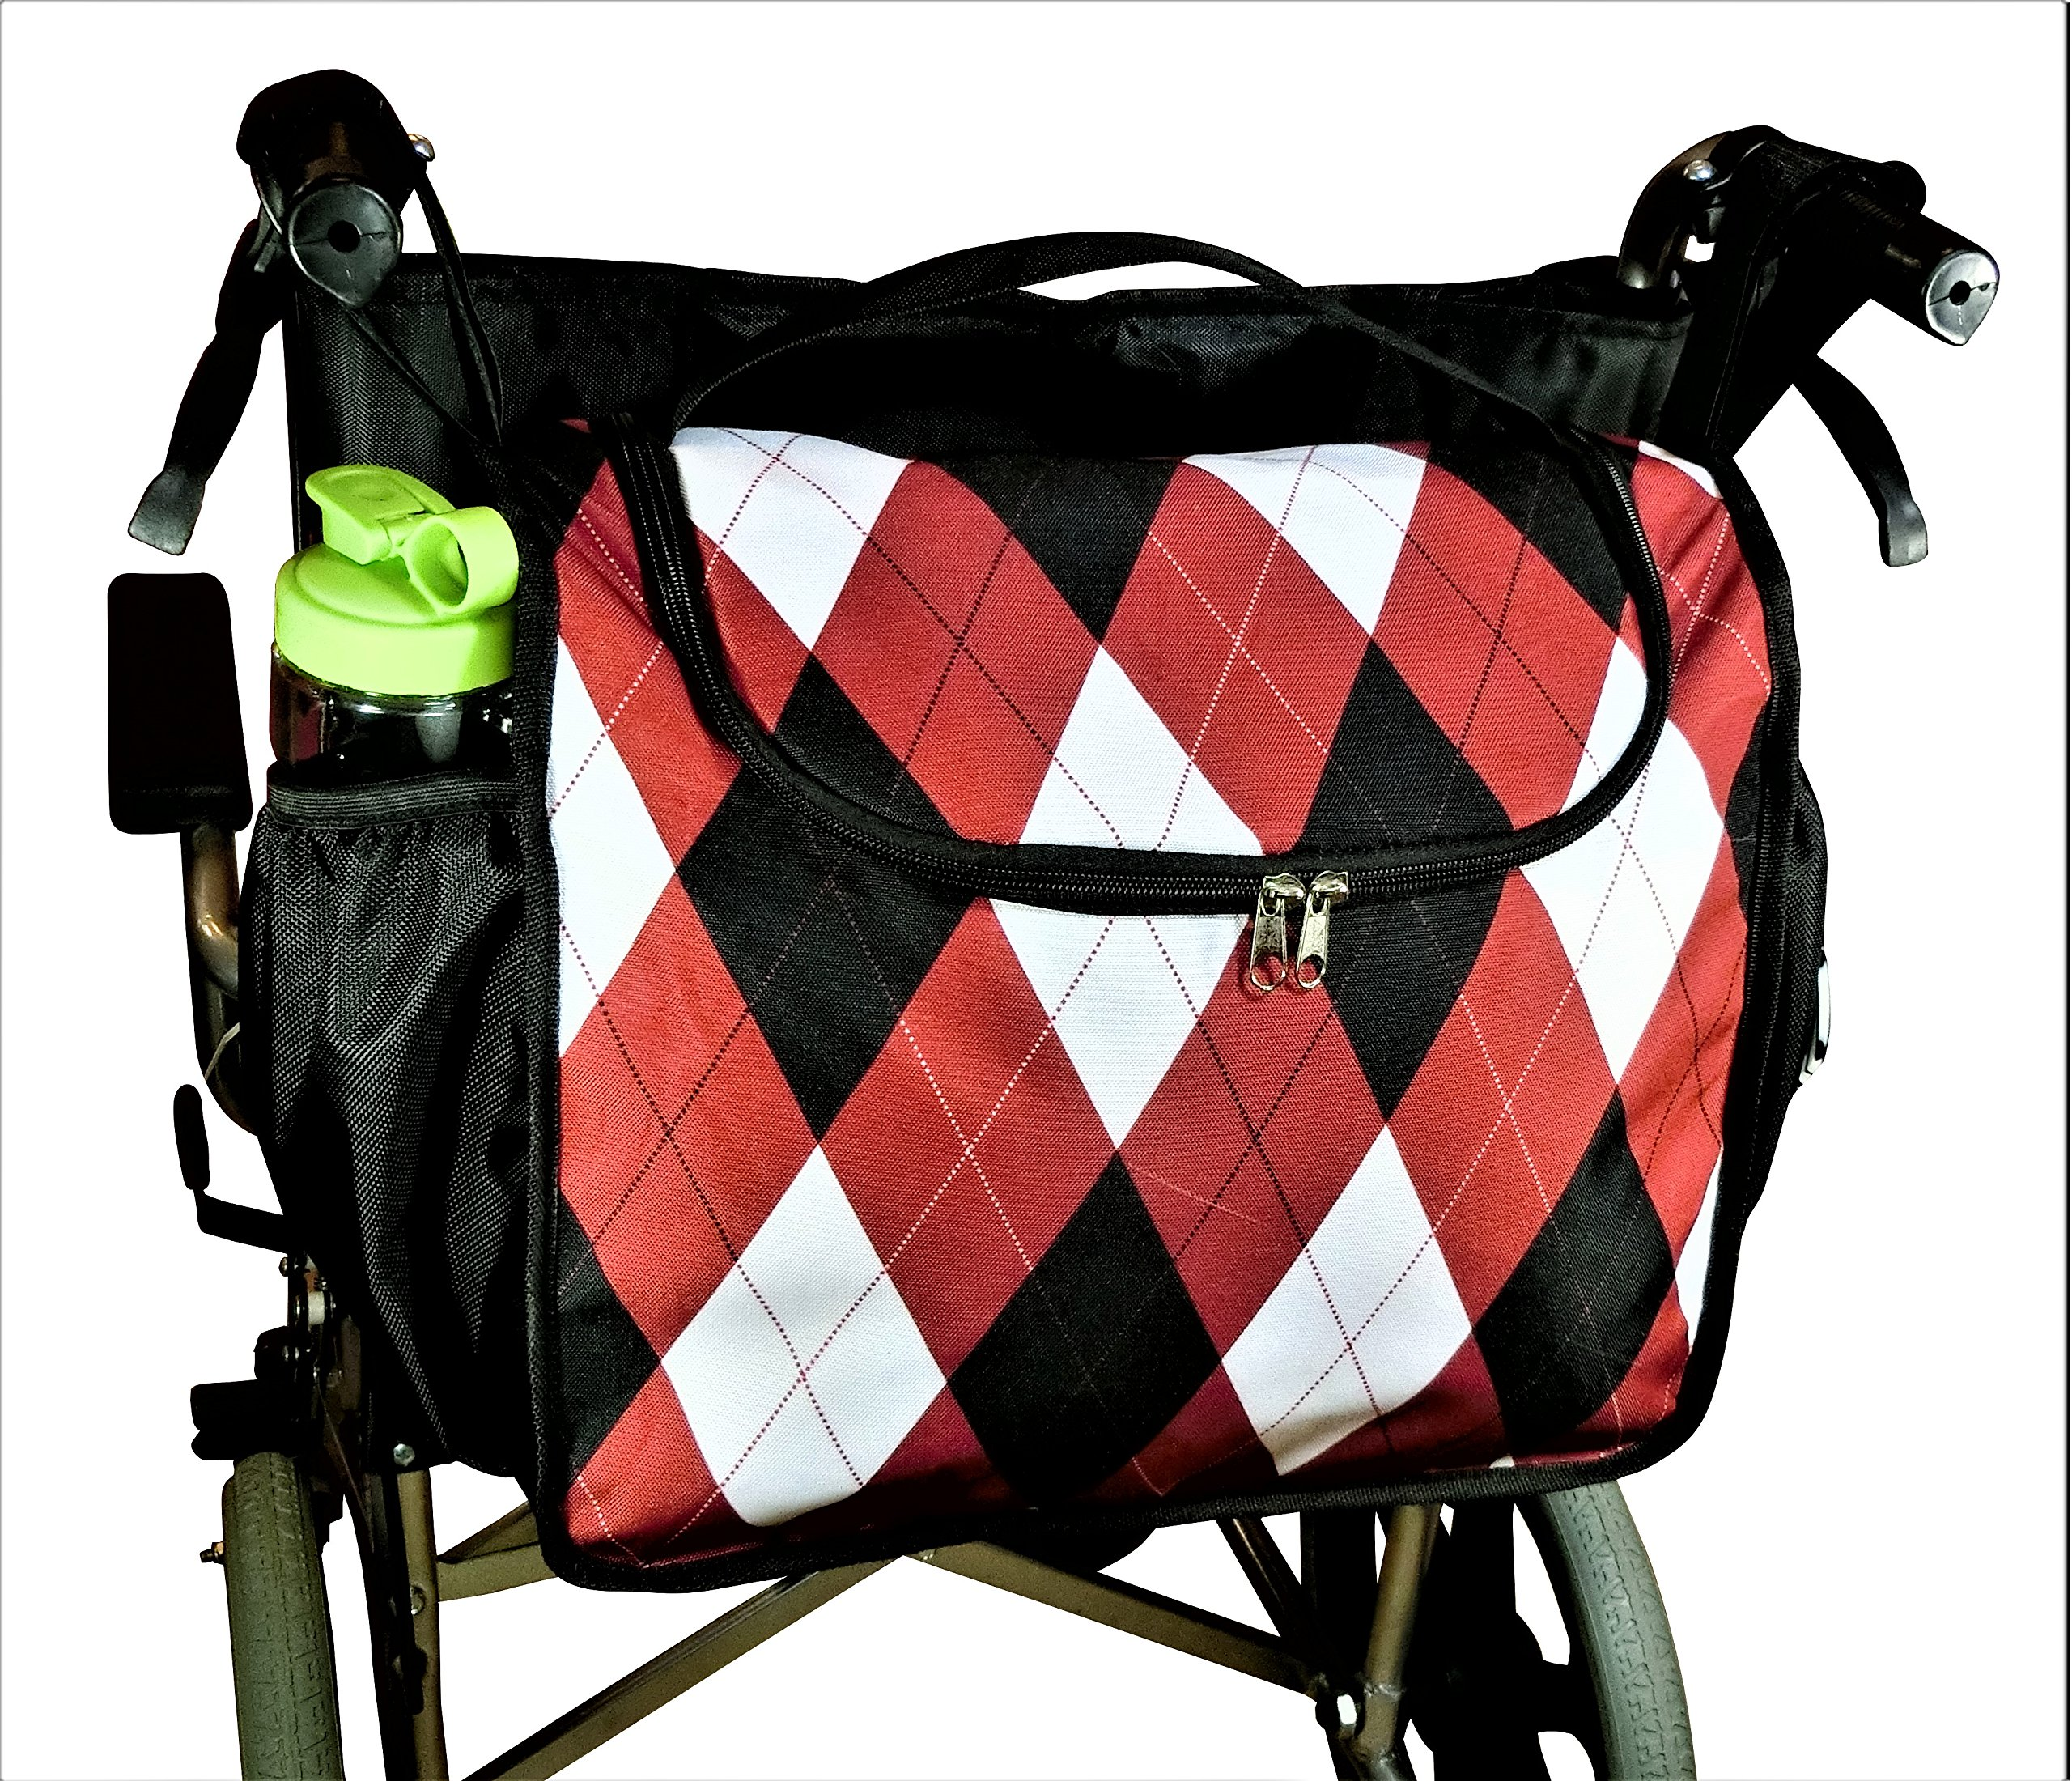 Wheelchair Back Pack, Wheelchair Bag, Wheelchair Carry Tote, Wheelchair Storage Bag, Large But Light Weight, Attractive Pattern, Unidex